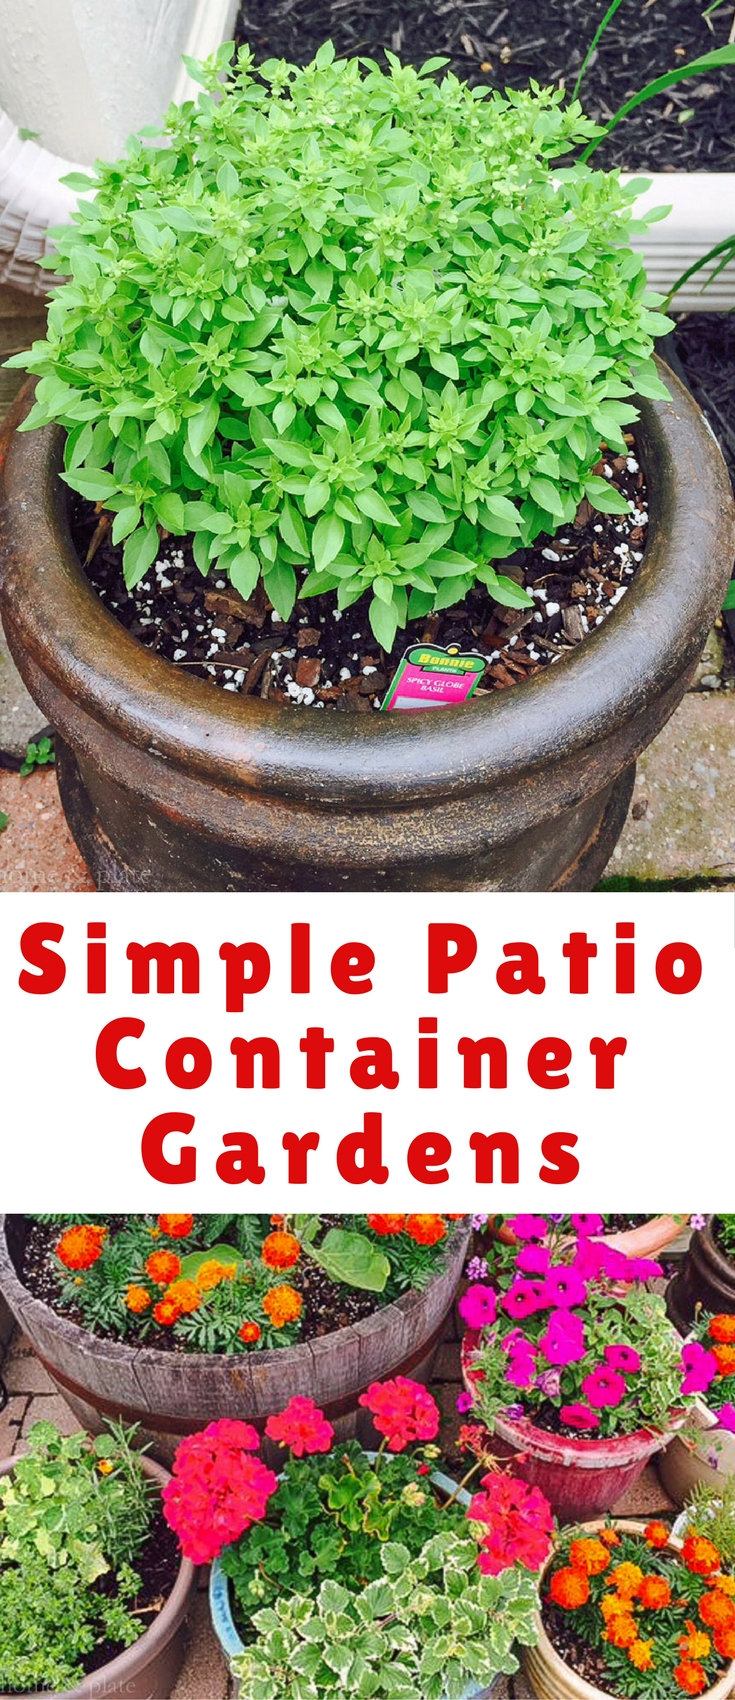 Make your small patio garden come alive this summer by using a variety of different sized pots and containers to add the right pops of color.